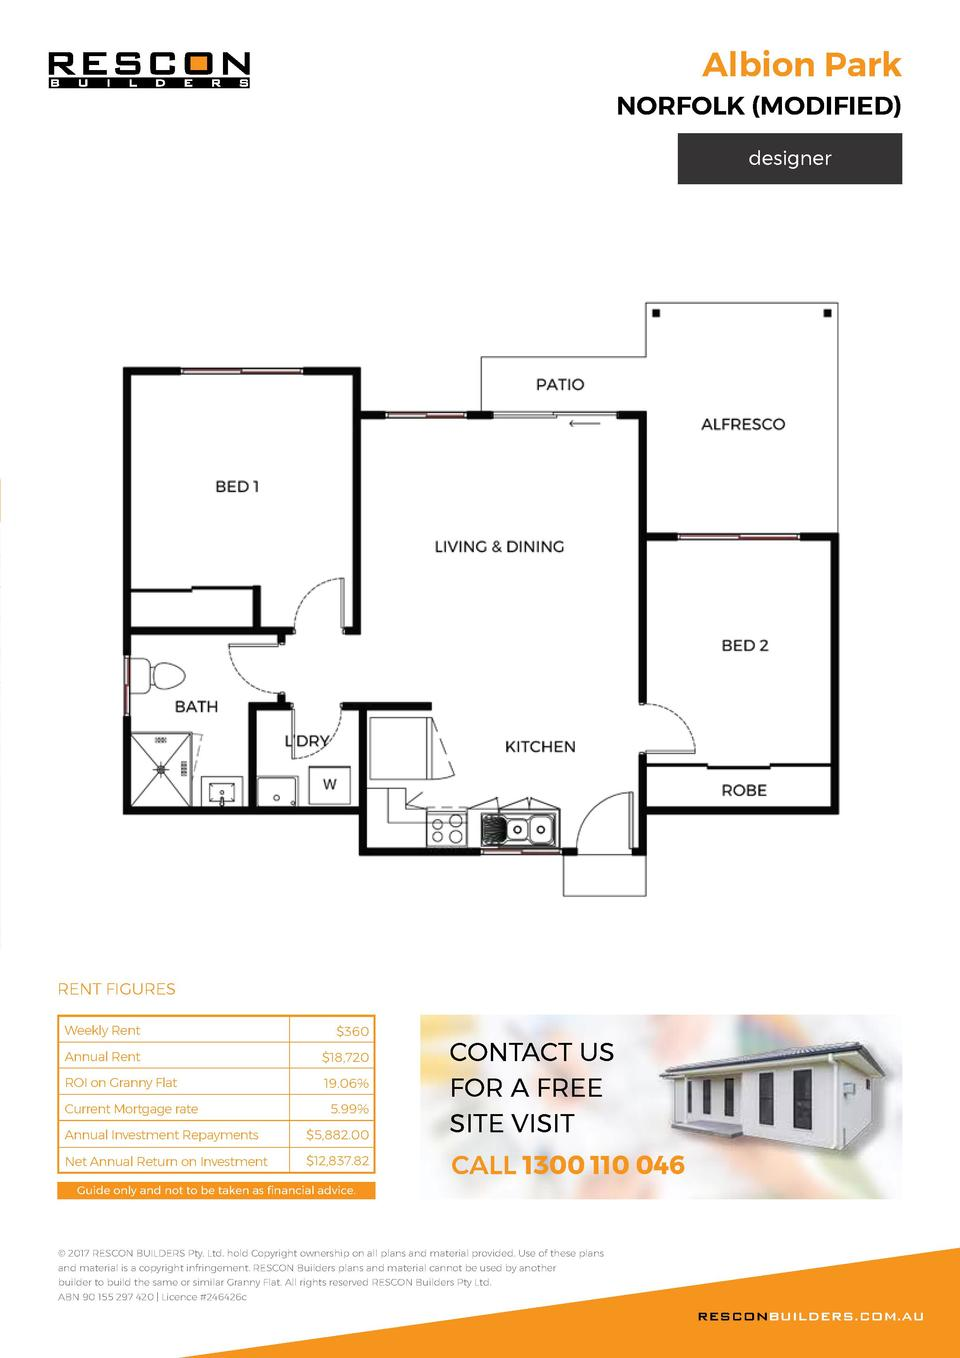 Albion Park  NORFOLK  MODIFIED  designer  RENT FIGURES Weekly Rent   360  Annual Rent   18,720  ROI on Granny Flat  19.06 ...